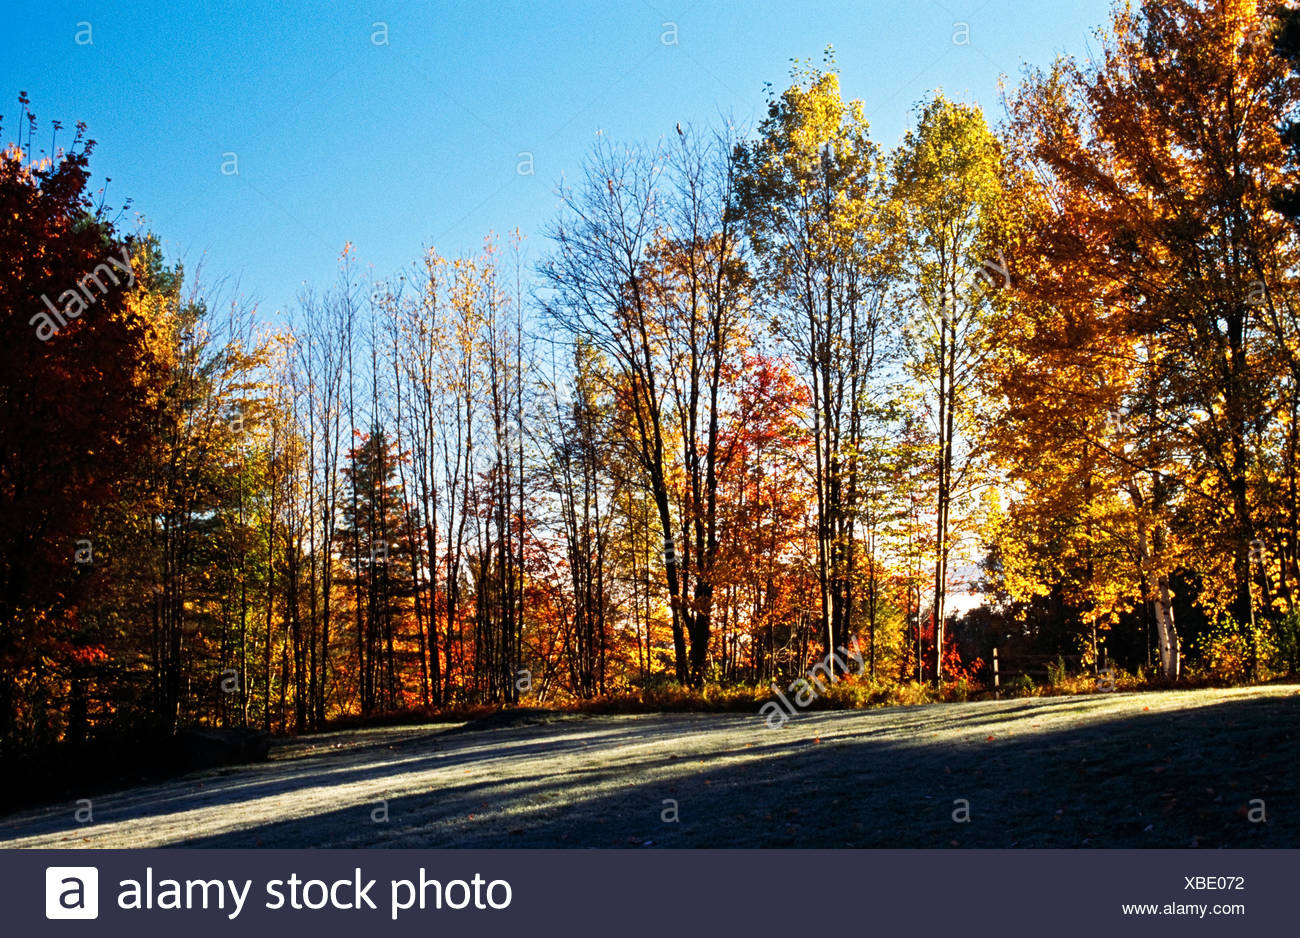 Fall forest - Stock Image